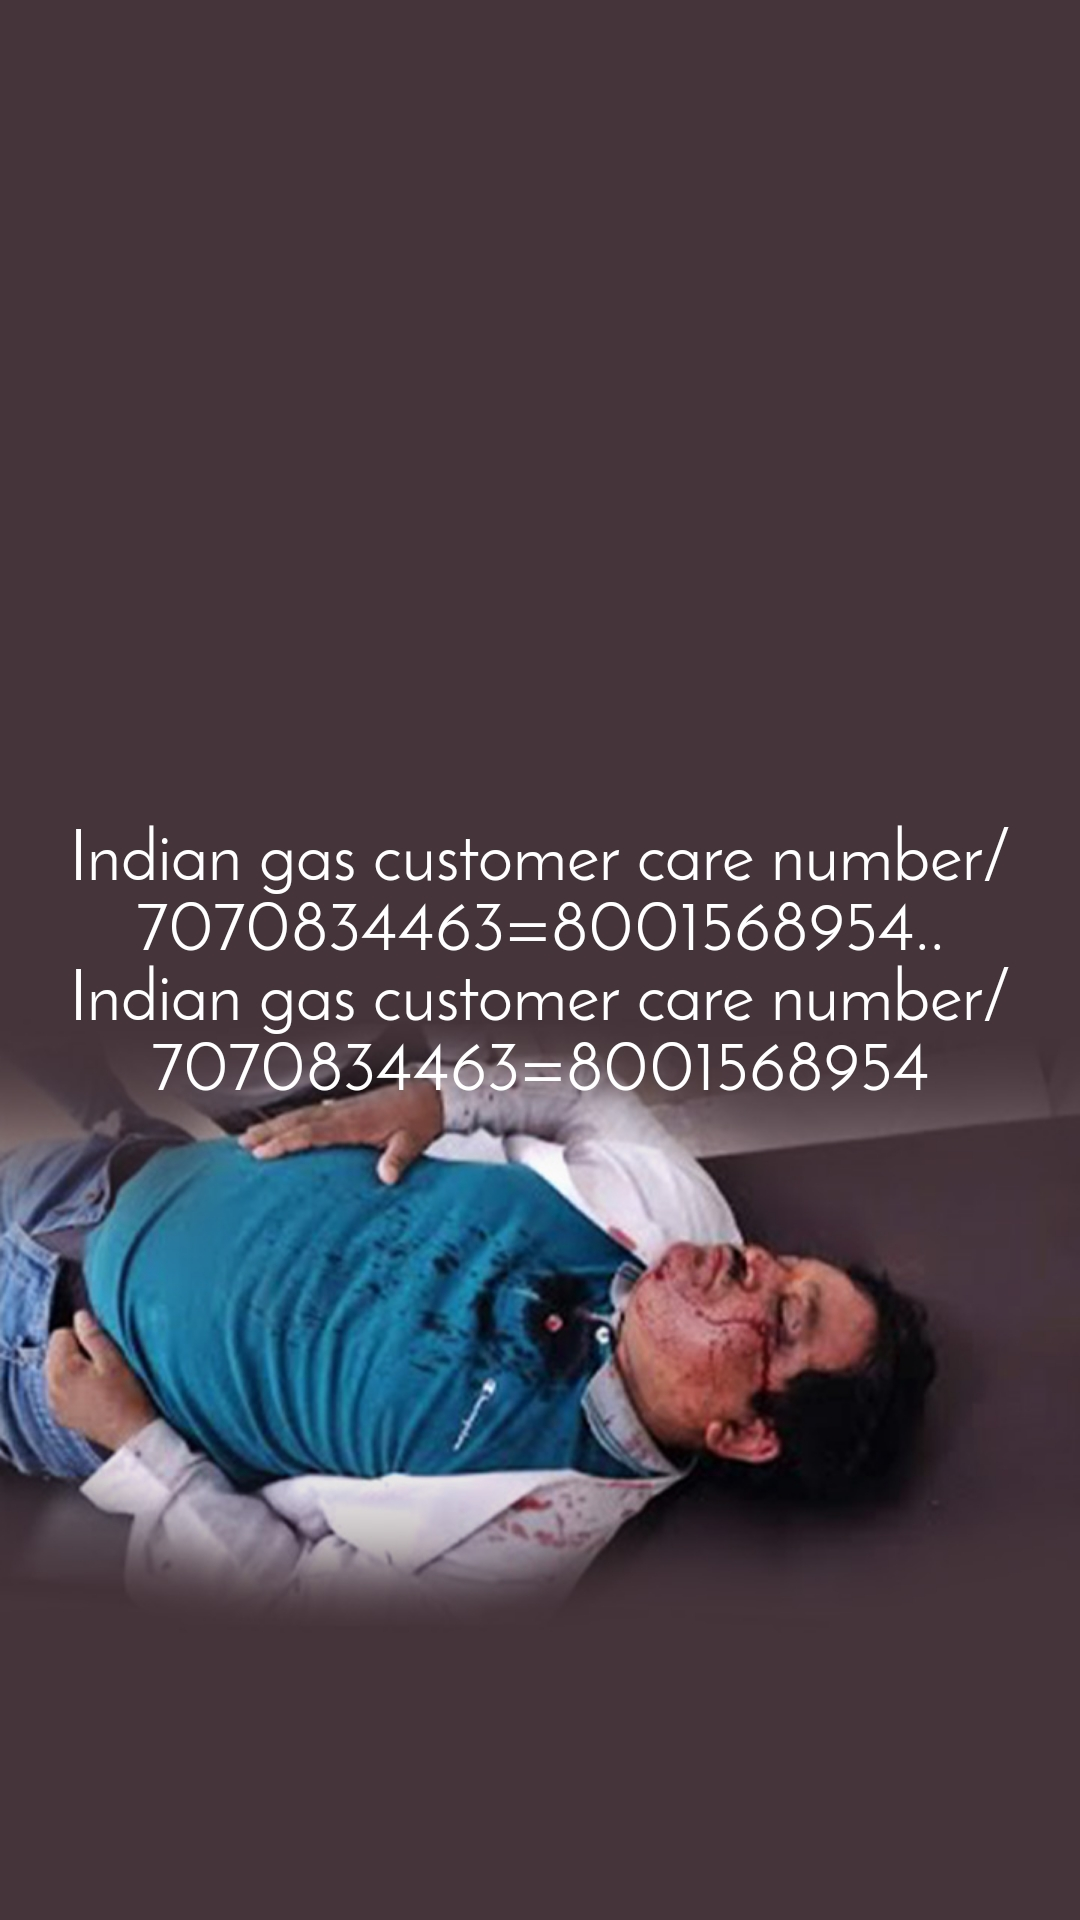 Indian gas customer care number/7070834463=8001568954.. Indian gas customer care number/7070834463=8001568954